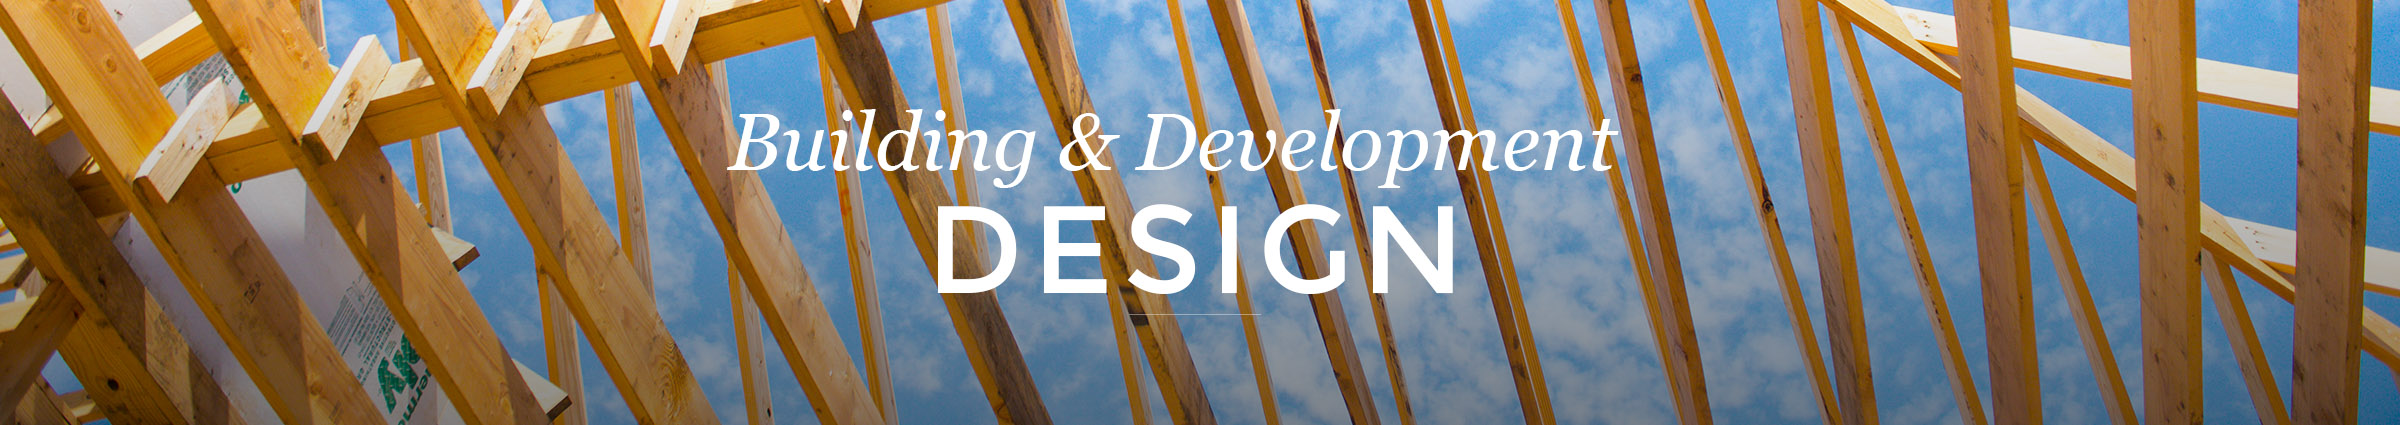 Building and Development Design